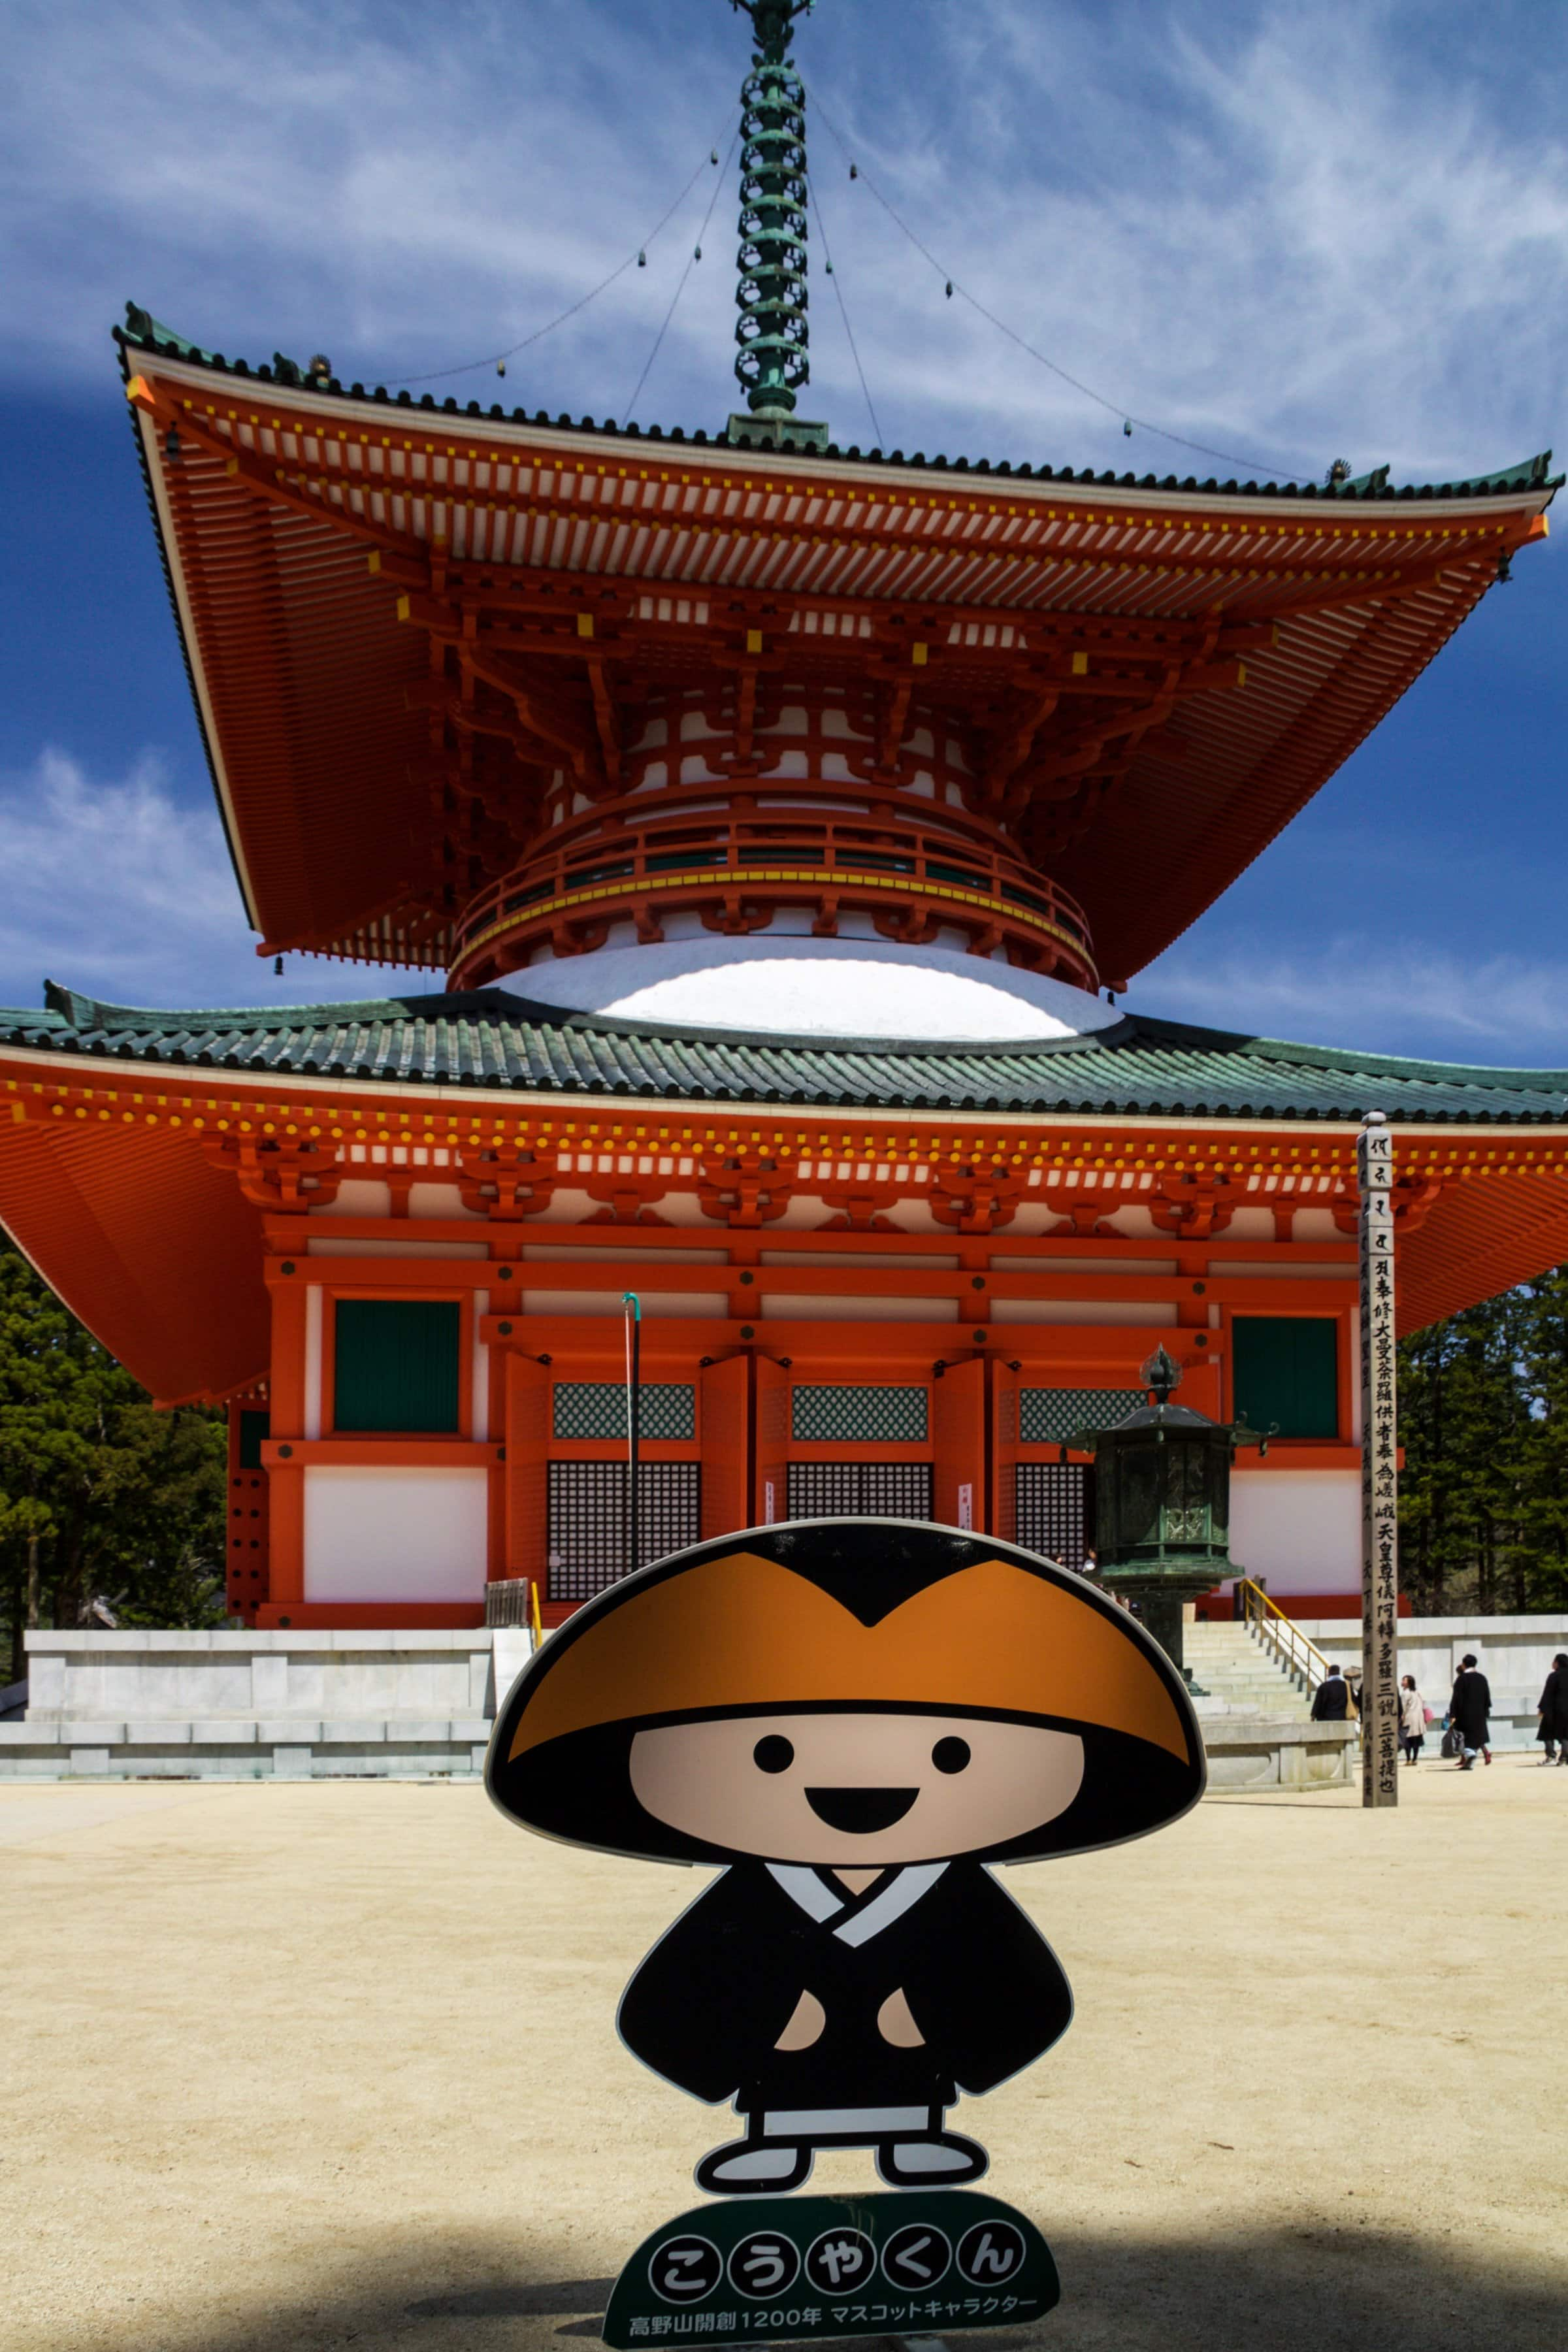 Mt. Koya (Koyasan) must not be missed for anyone seeking spiritual understanding in Japan. There are 5 things you must see in Koyasan... Read more at thefivefoottraveler.com